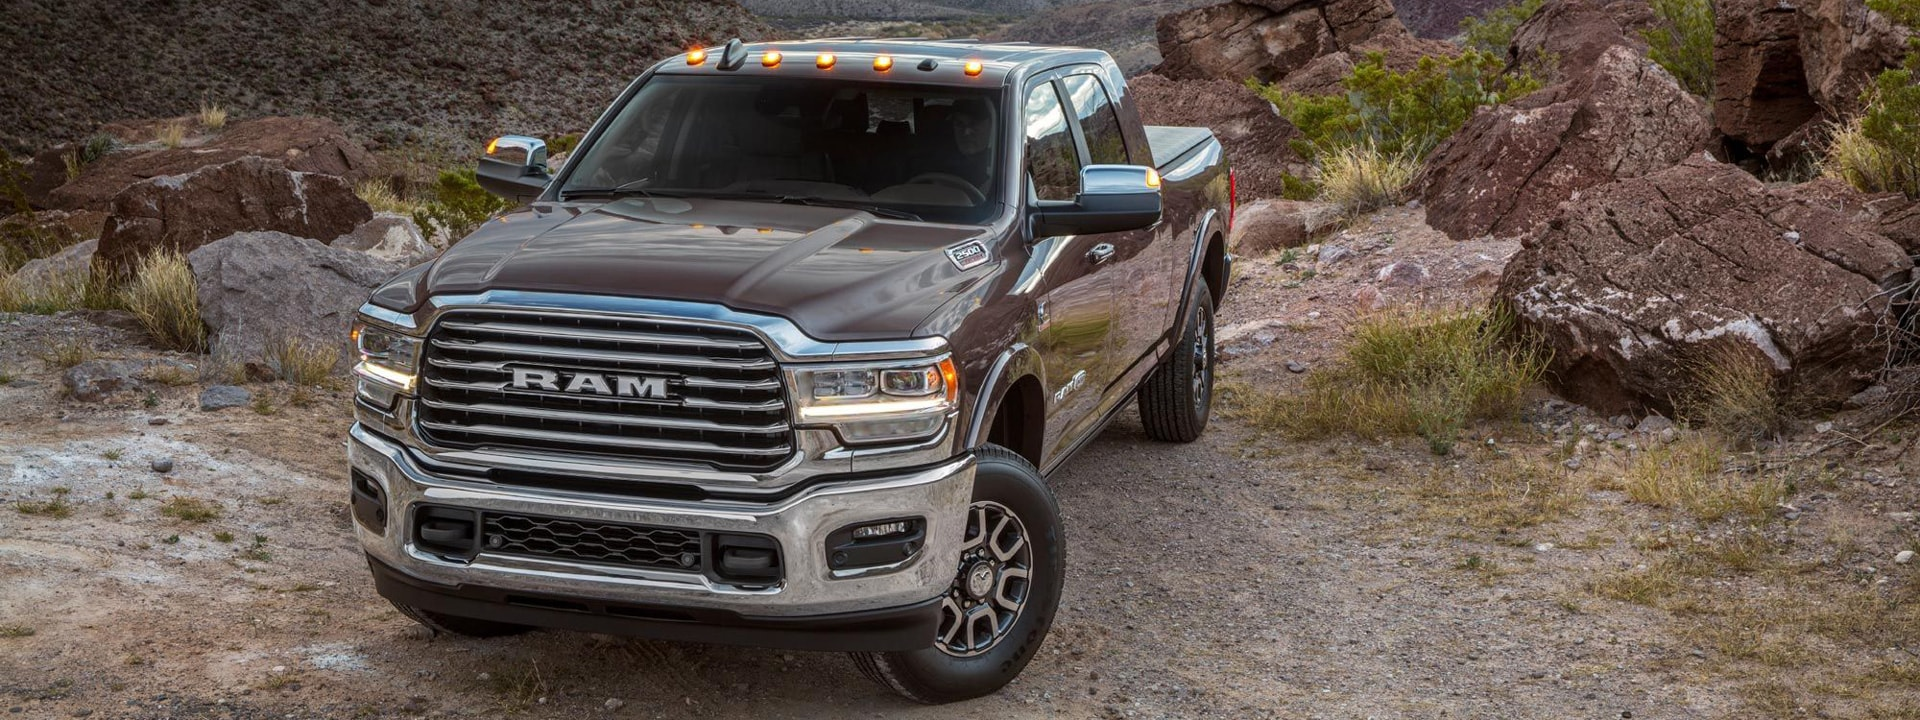 2021 RAM 3500 for sale near me